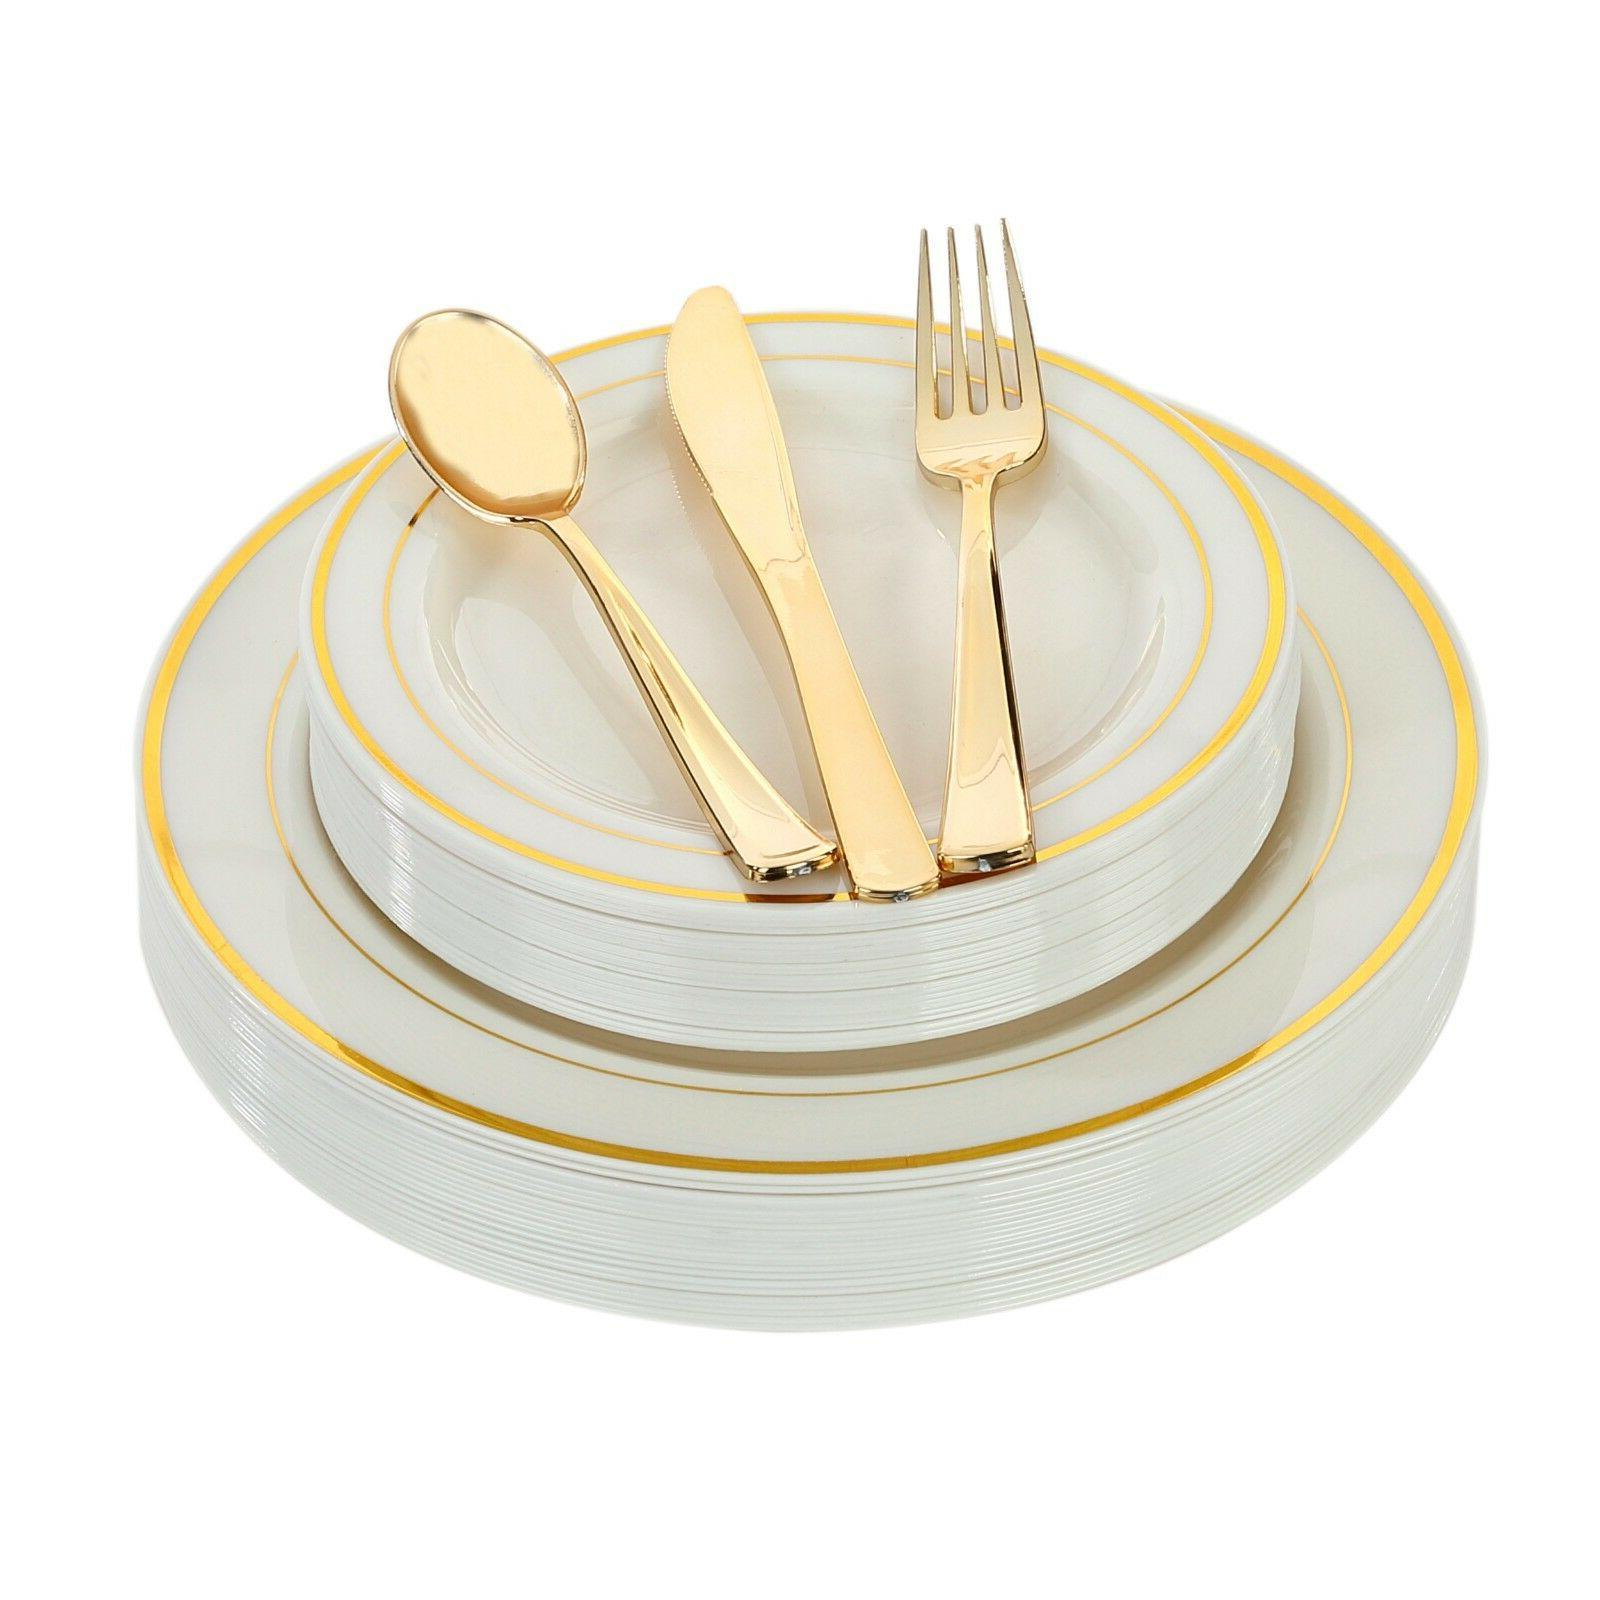 Plastic Disposable Plates Dinner Wedding Silve/Gold Occasion